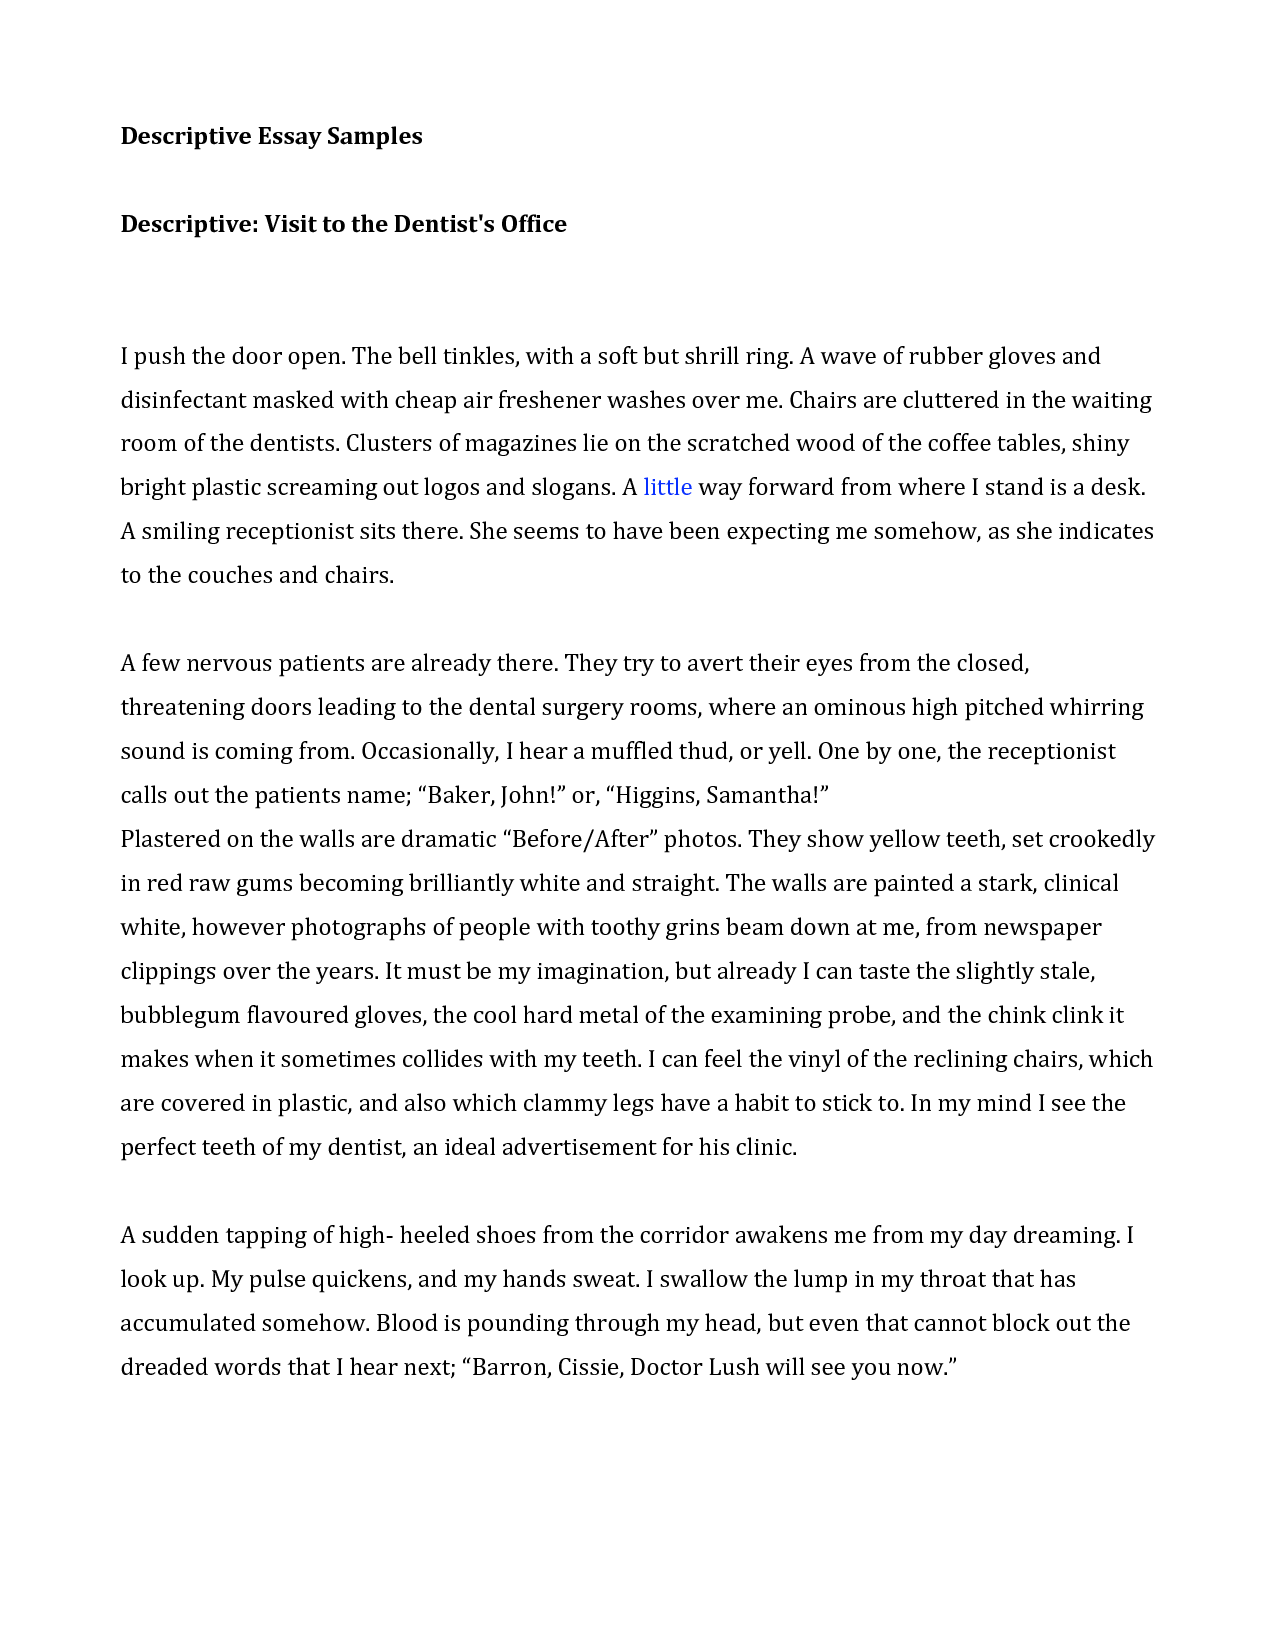 essay on descriptive writing How to write a descriptive essay a descriptive essay should create a vivid picture of the topic in the reader's mind you may need to write a descriptive essay for a class assignment or.